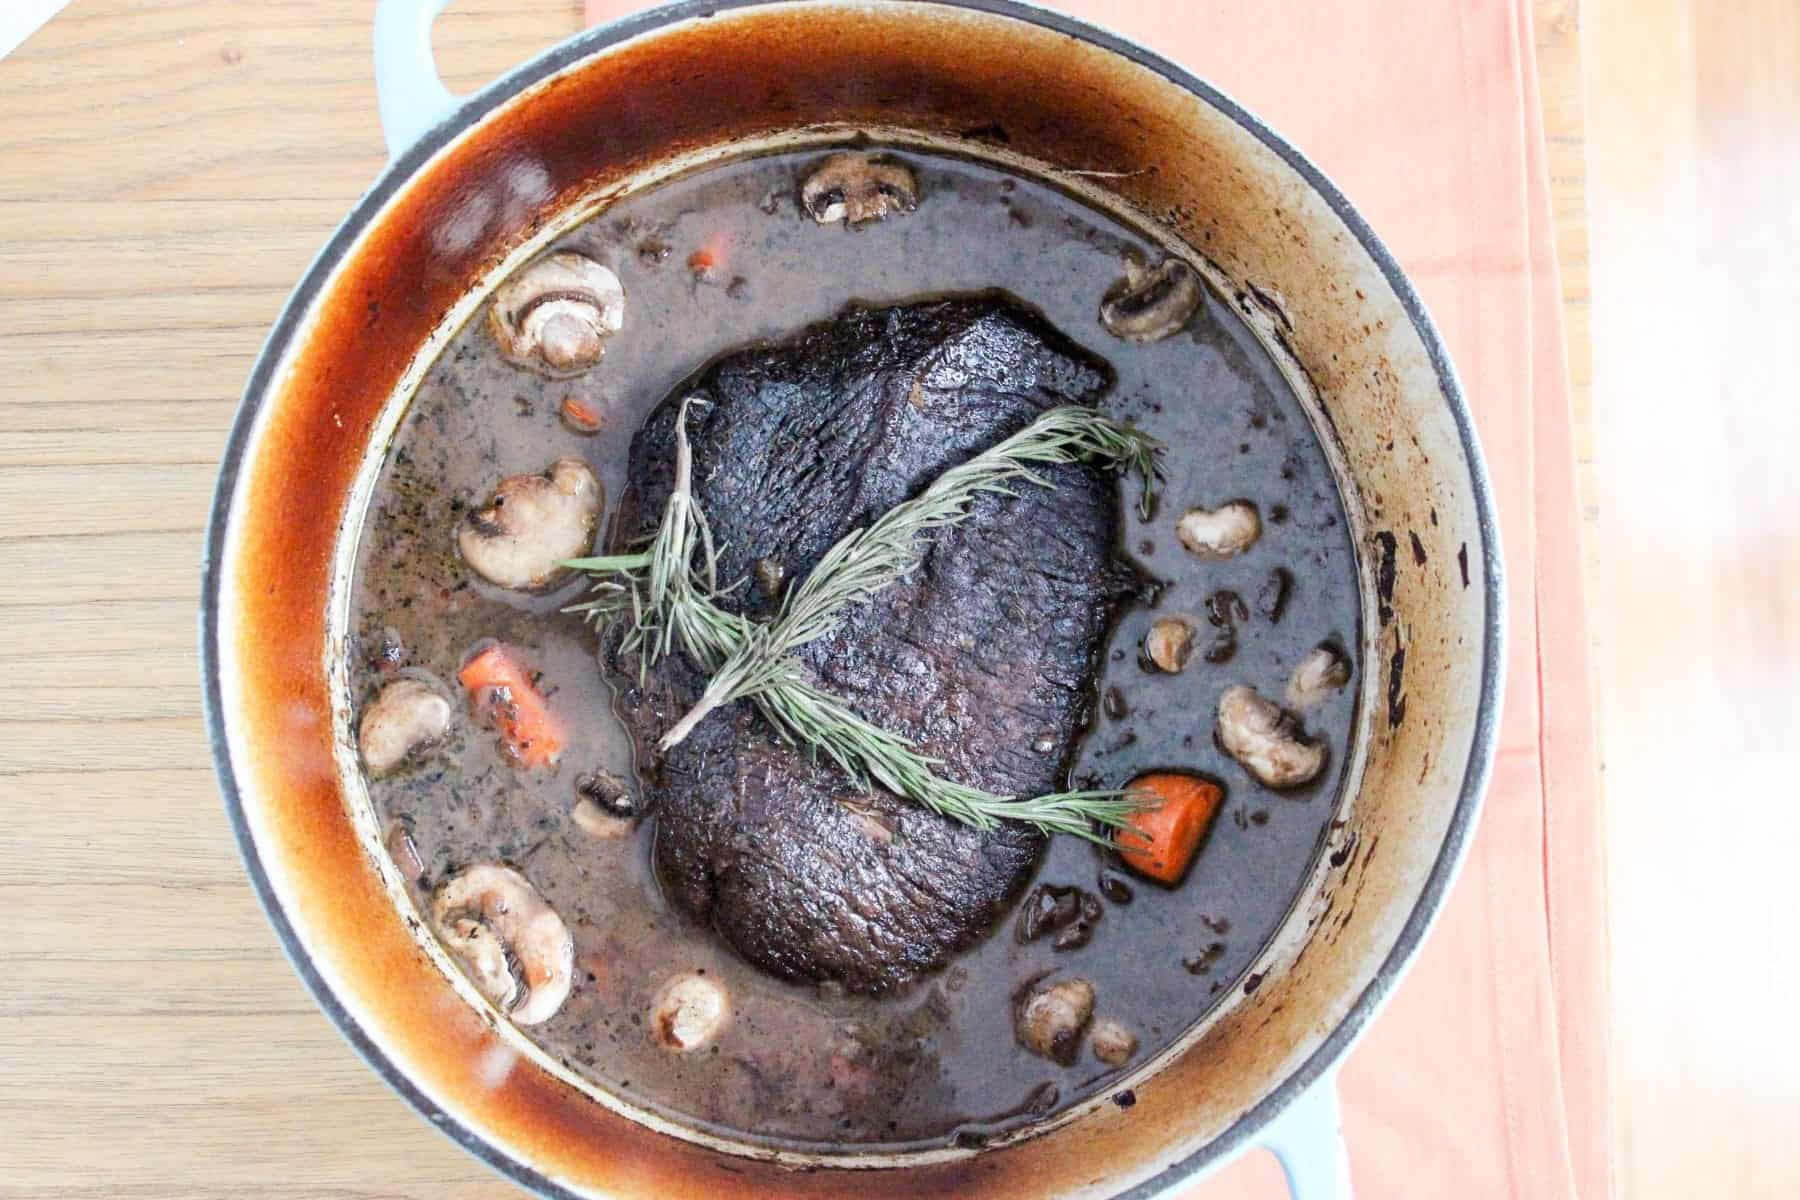 Fork tender beef pot roast with red wine, mushrooms, and root vegetables. Braised in the oven, but there's an option for the crock pot or slow cooker!